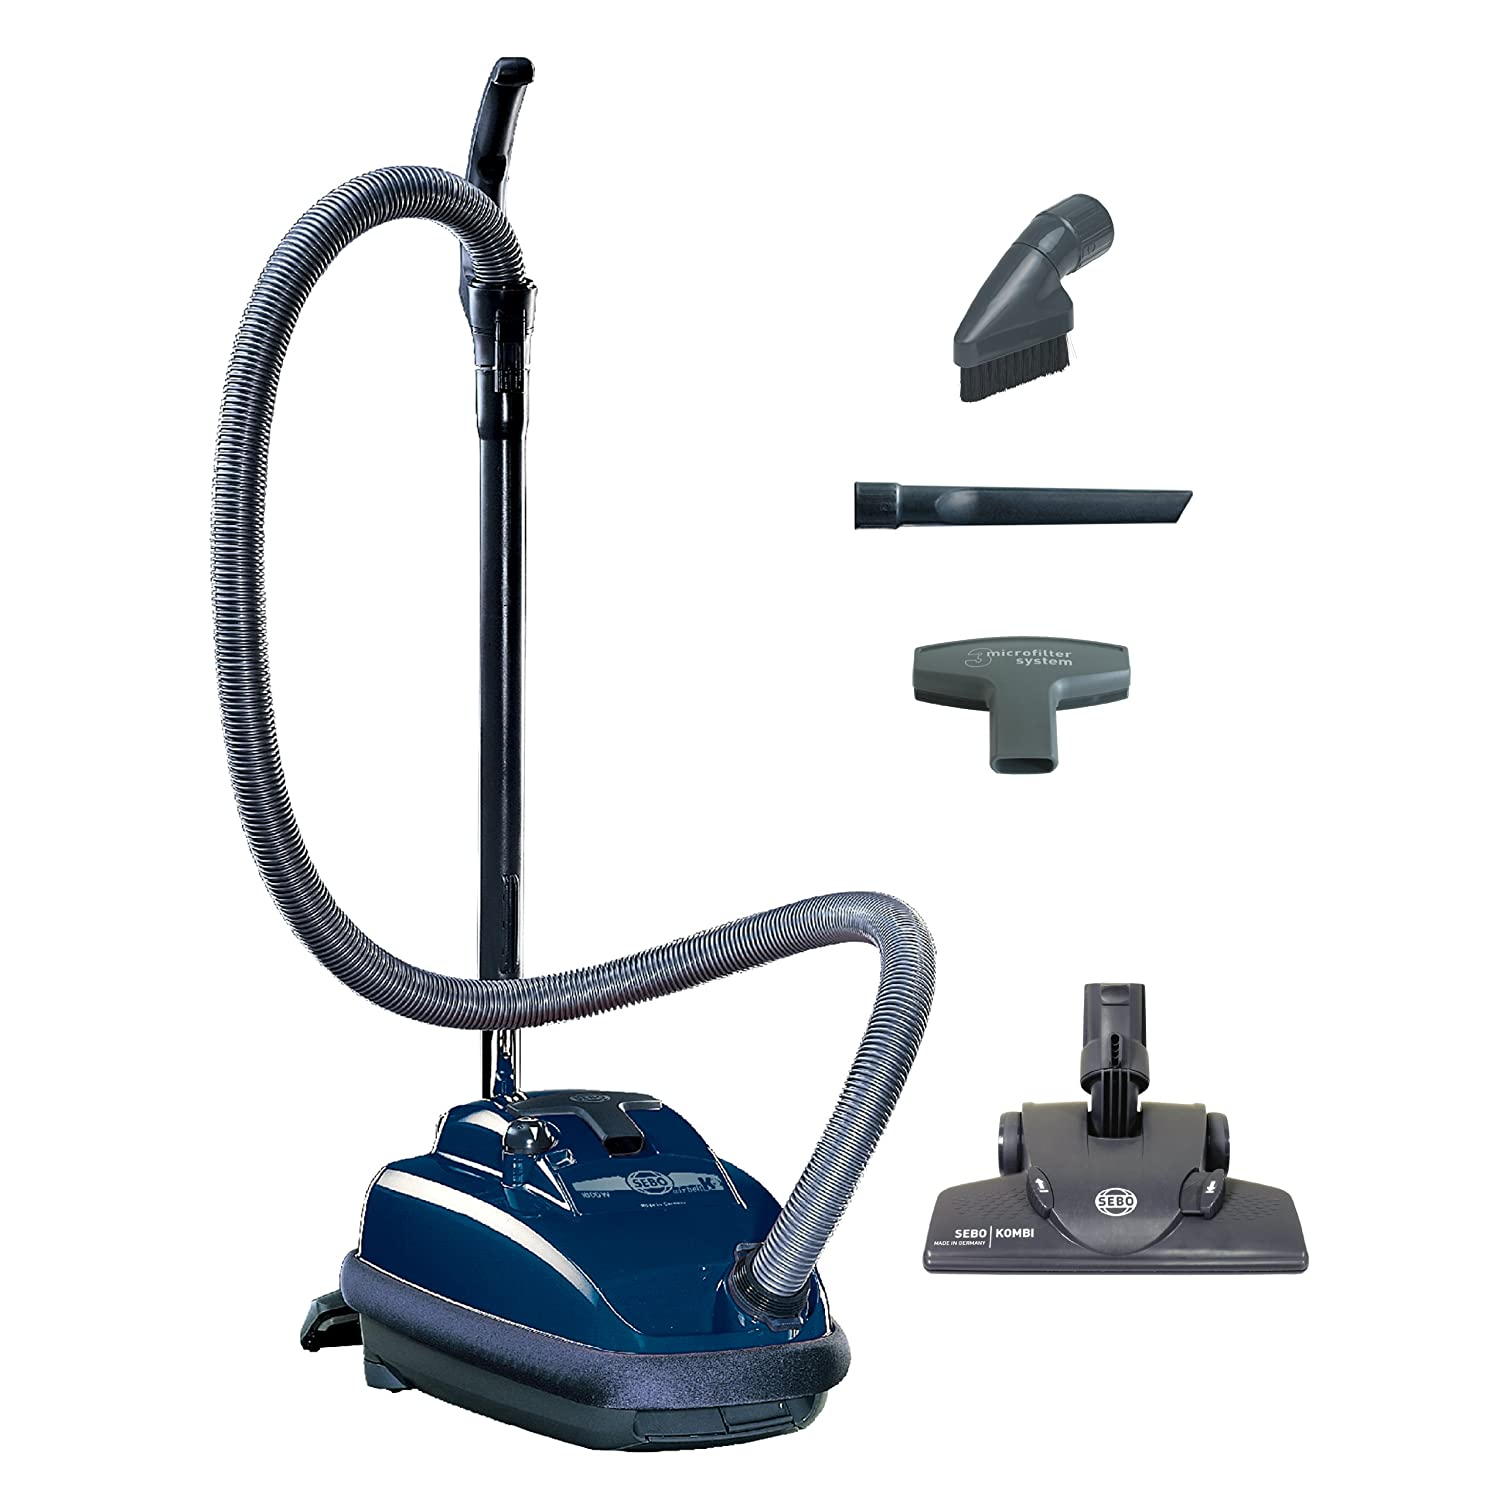 Sebo vacuum cleaners at bed bath and beyond - Amazon Com Sebo Vacuums 9679am Airbelt K2 Kombi Canister Vacuum Dark Blue Corded Household Canister Vacuums